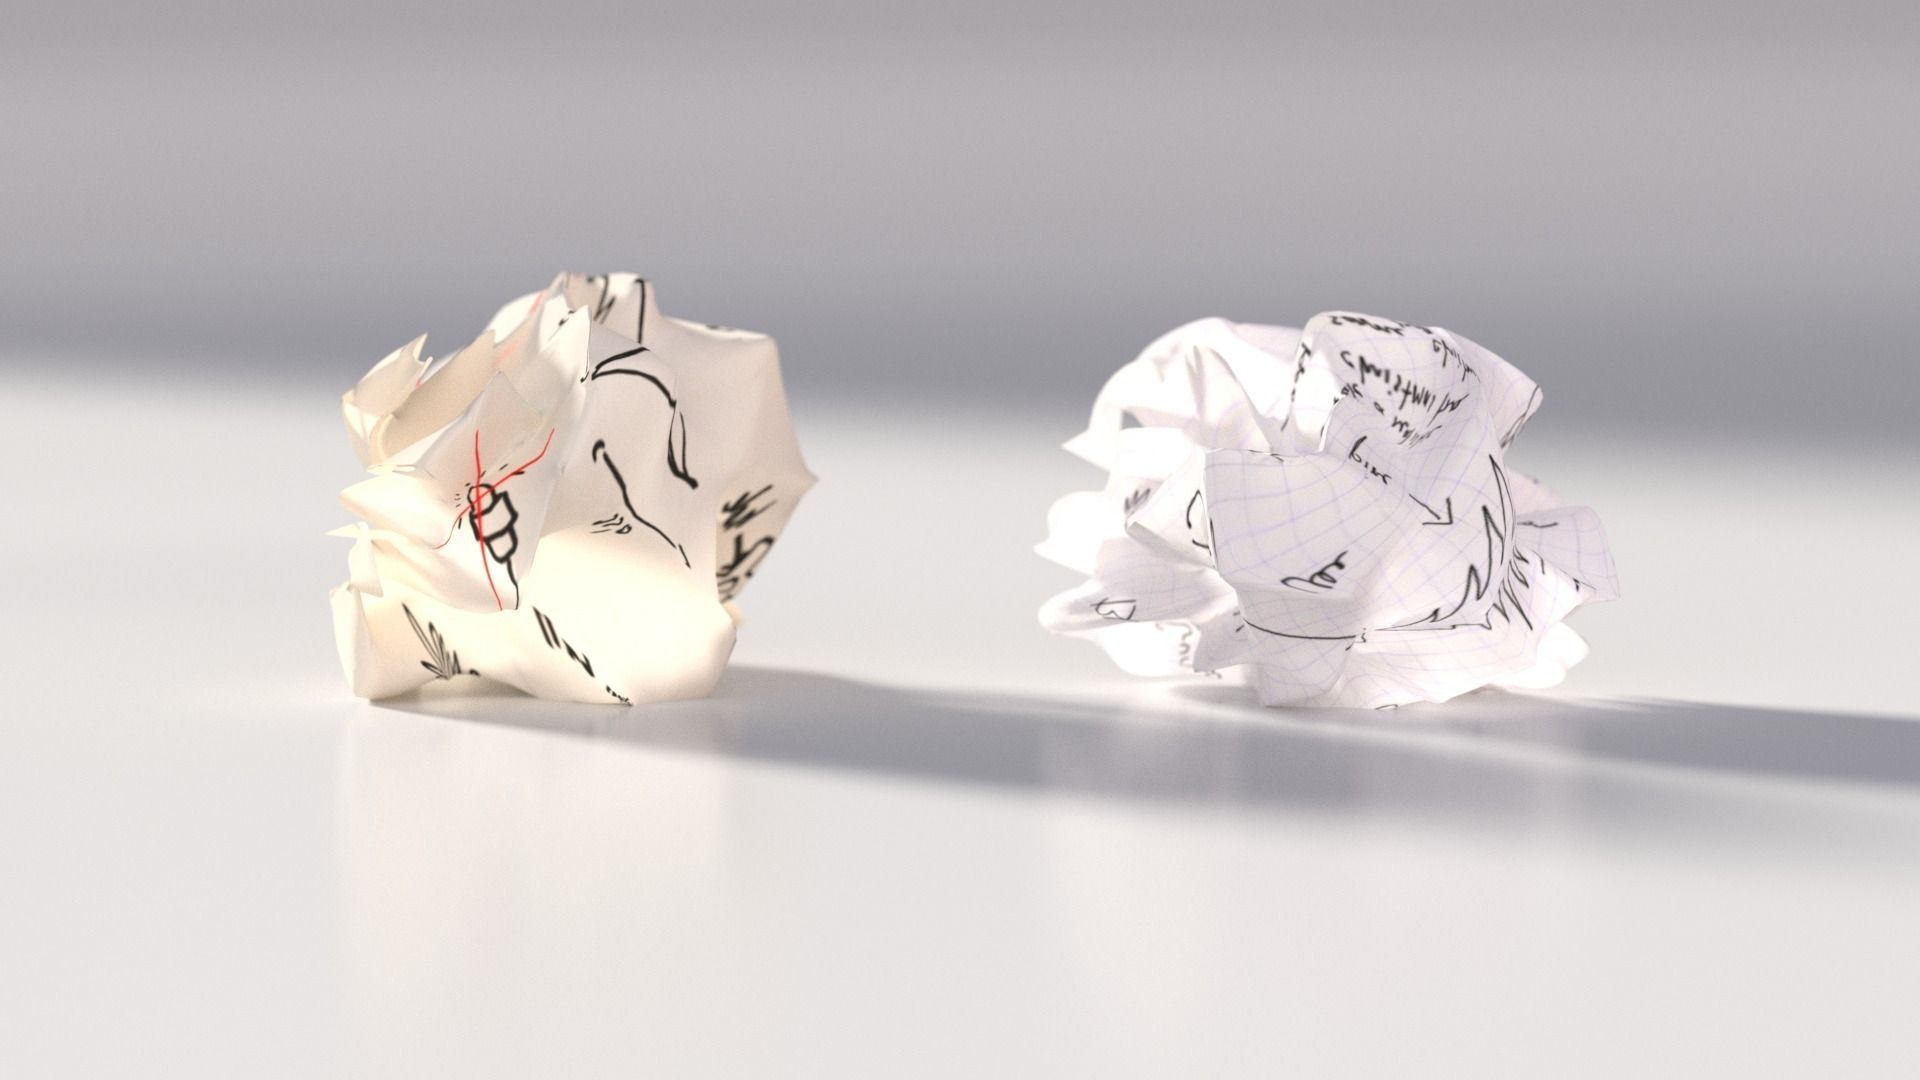 Crumpled paper ball 3D model | CGTrader